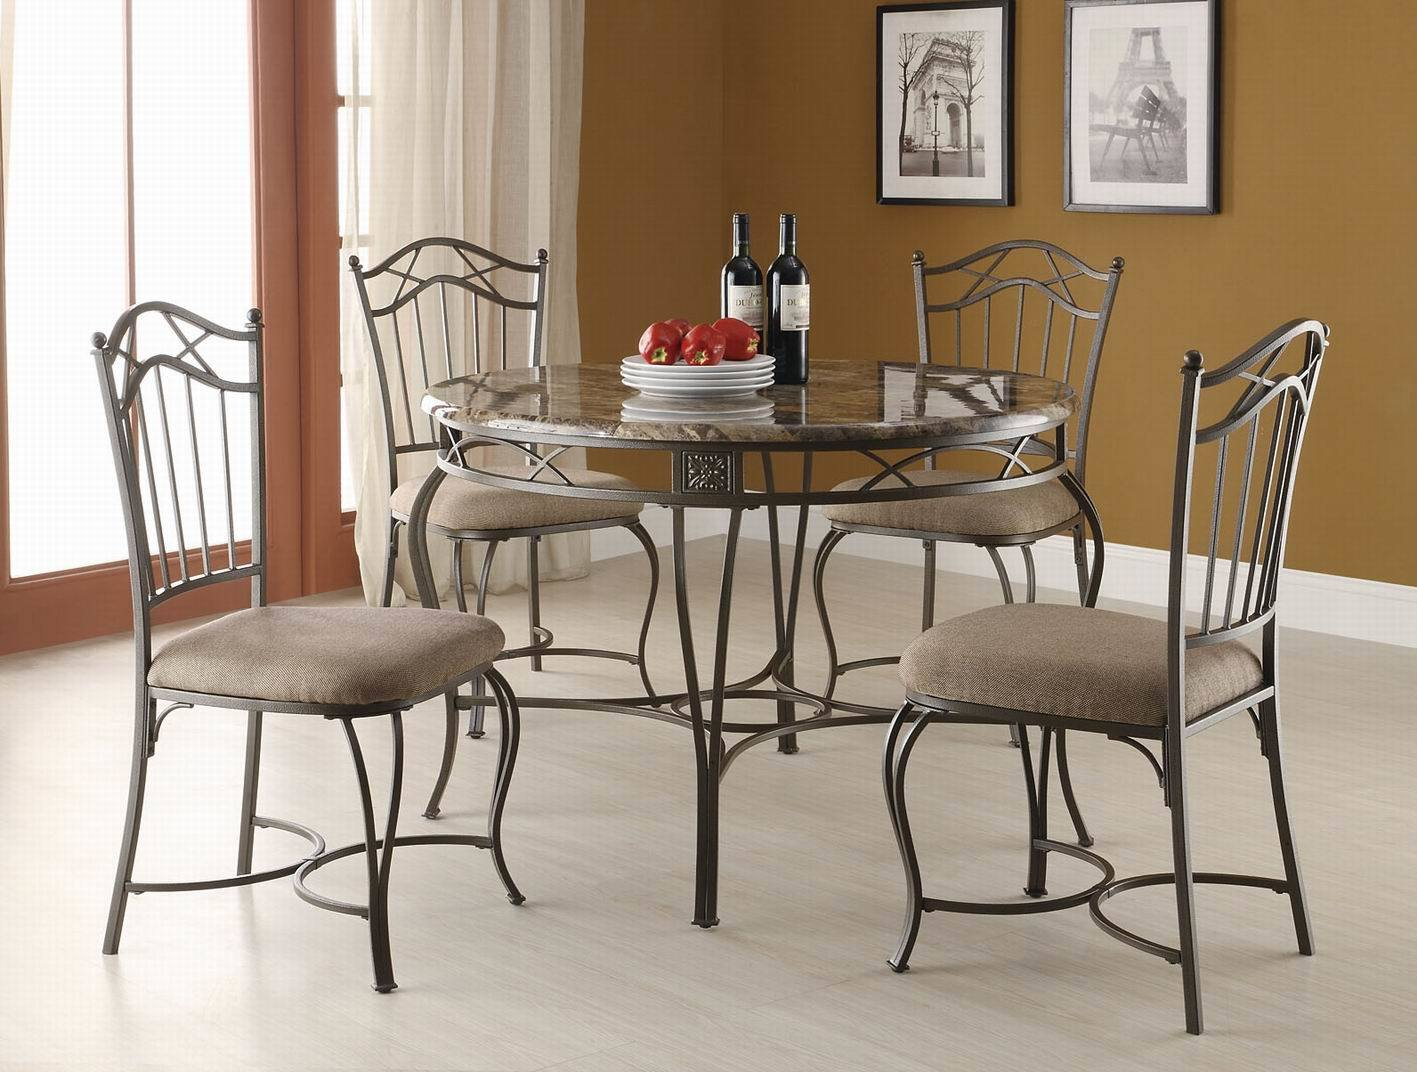 Metal Dining Furniture with Powder Coating Painting